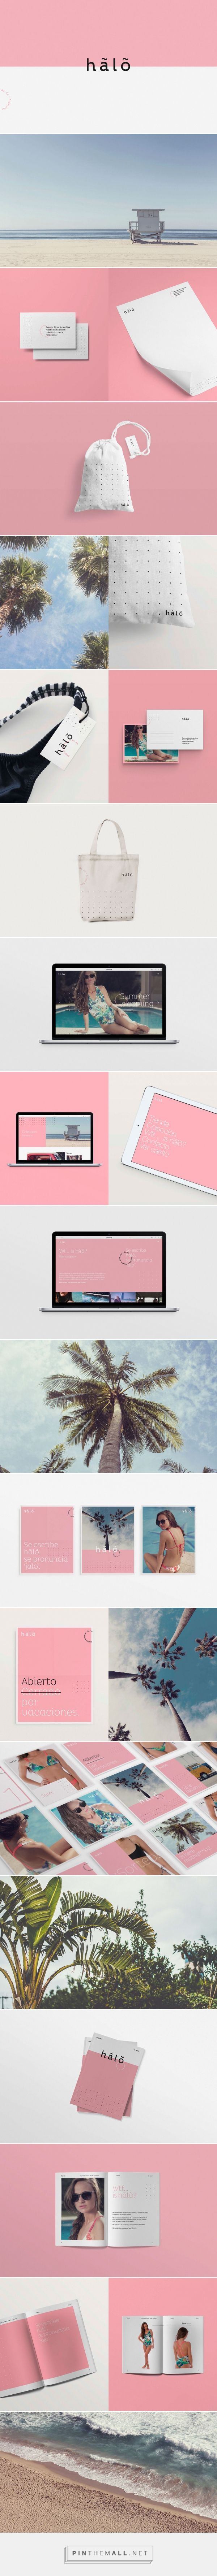 Hãlõ Swimwear Branding by Page | Fivestar Branding Agency – Design and Branding Agency & Curated Inspiration Gallery